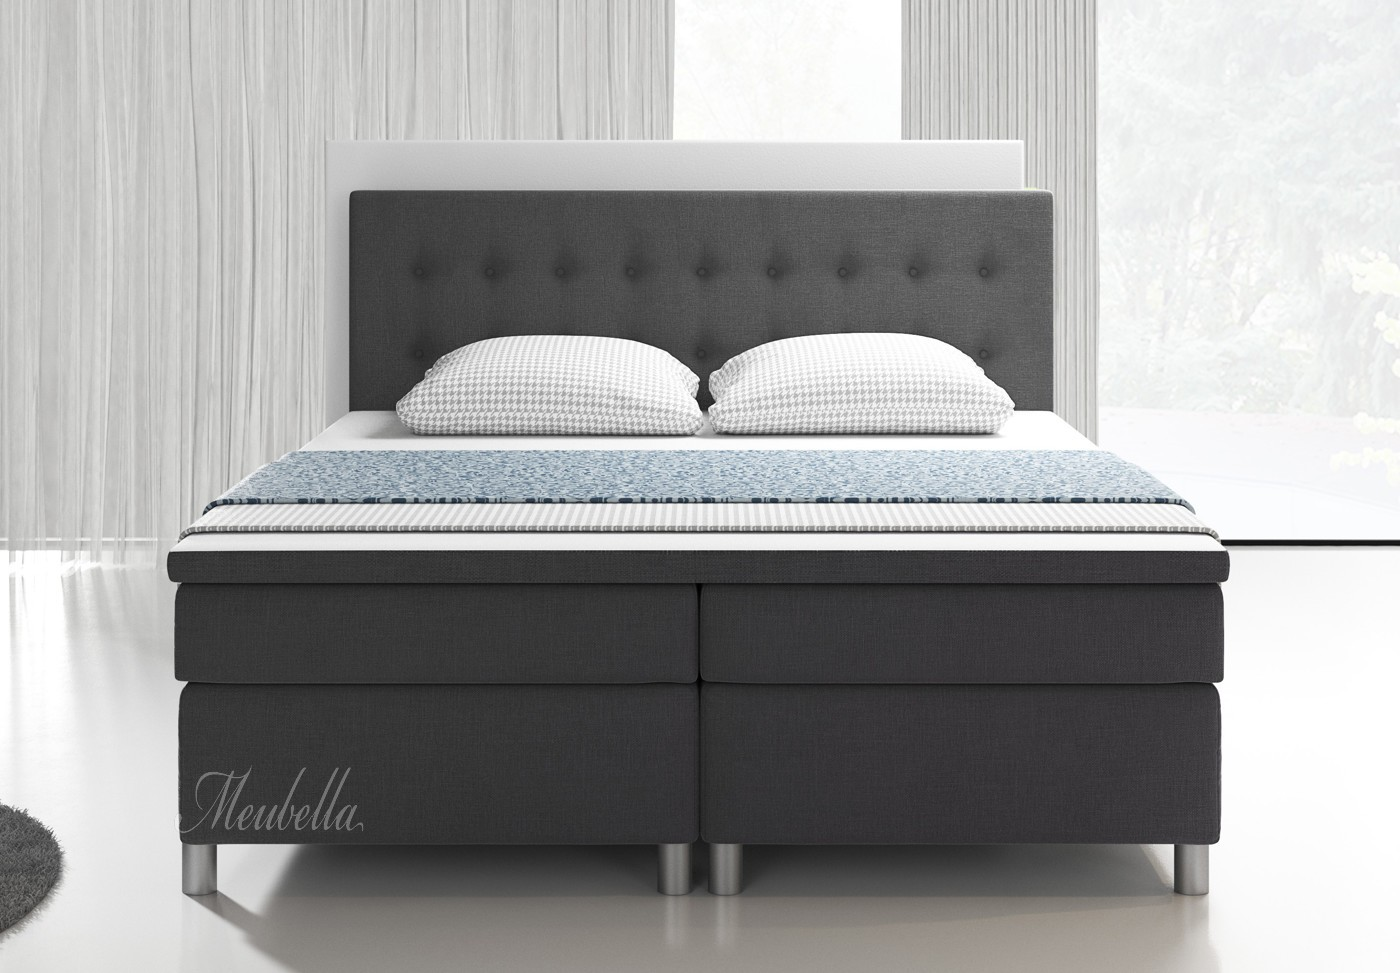 boxspring batavia grijs 200x200 cm meubella. Black Bedroom Furniture Sets. Home Design Ideas